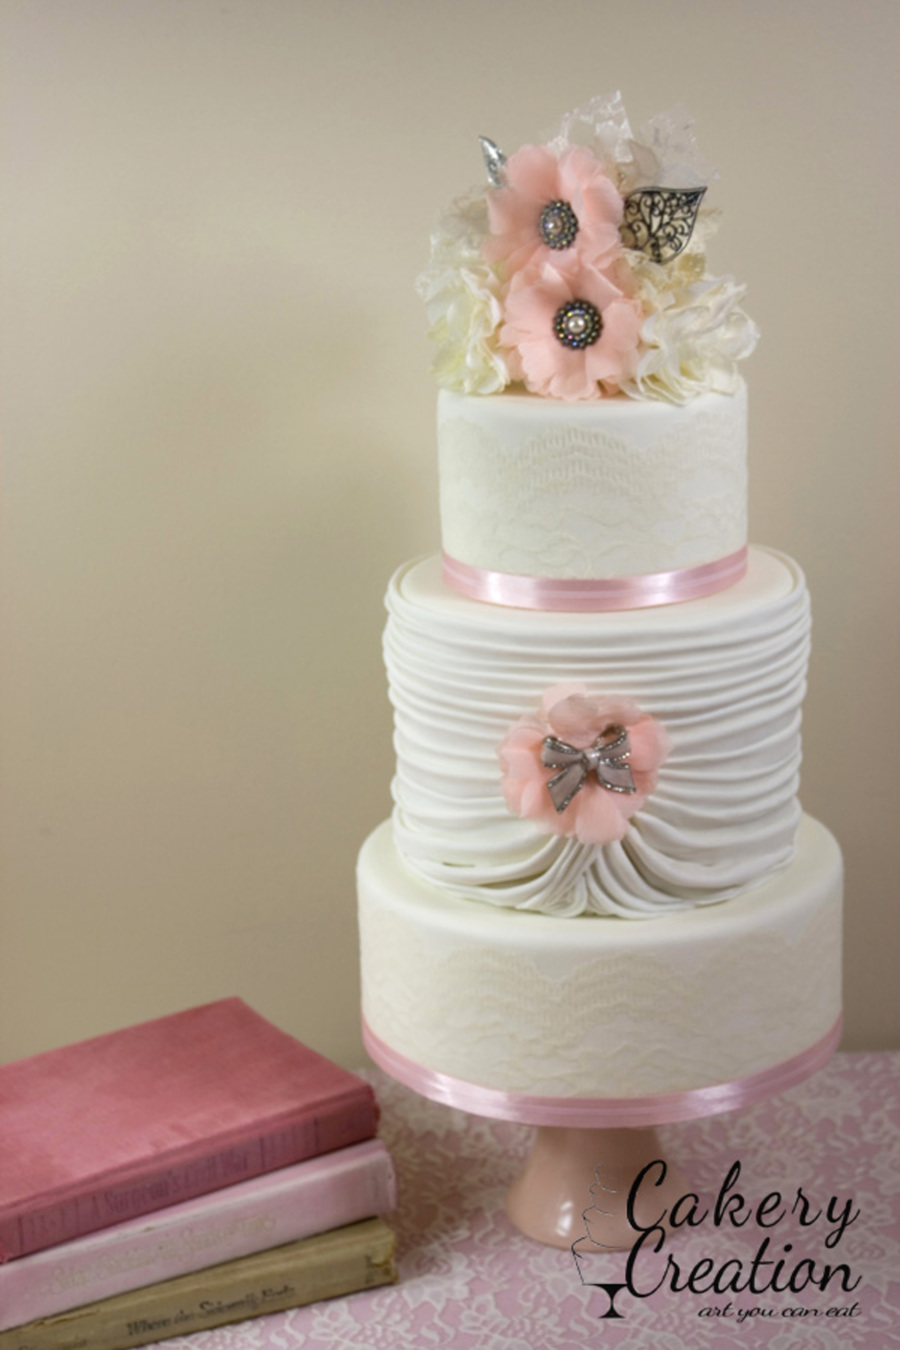 Vintage Lace Wedding Cake By Cakery Creation In Daytona Beach on Cake Central